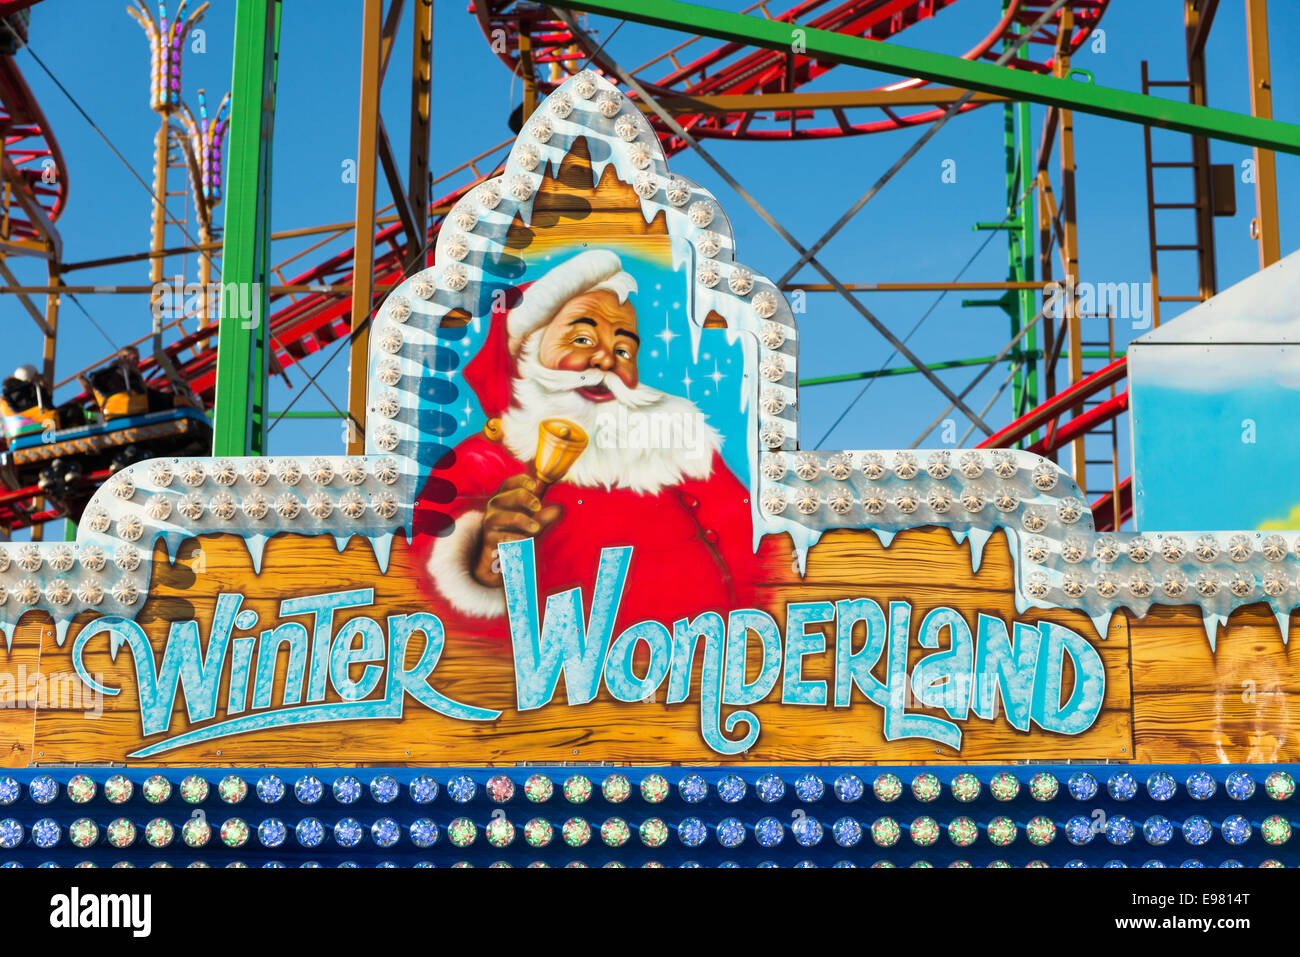 Christmas funfair at Winter Wonderland, Hyde Park, London, England, UK Stock Photo